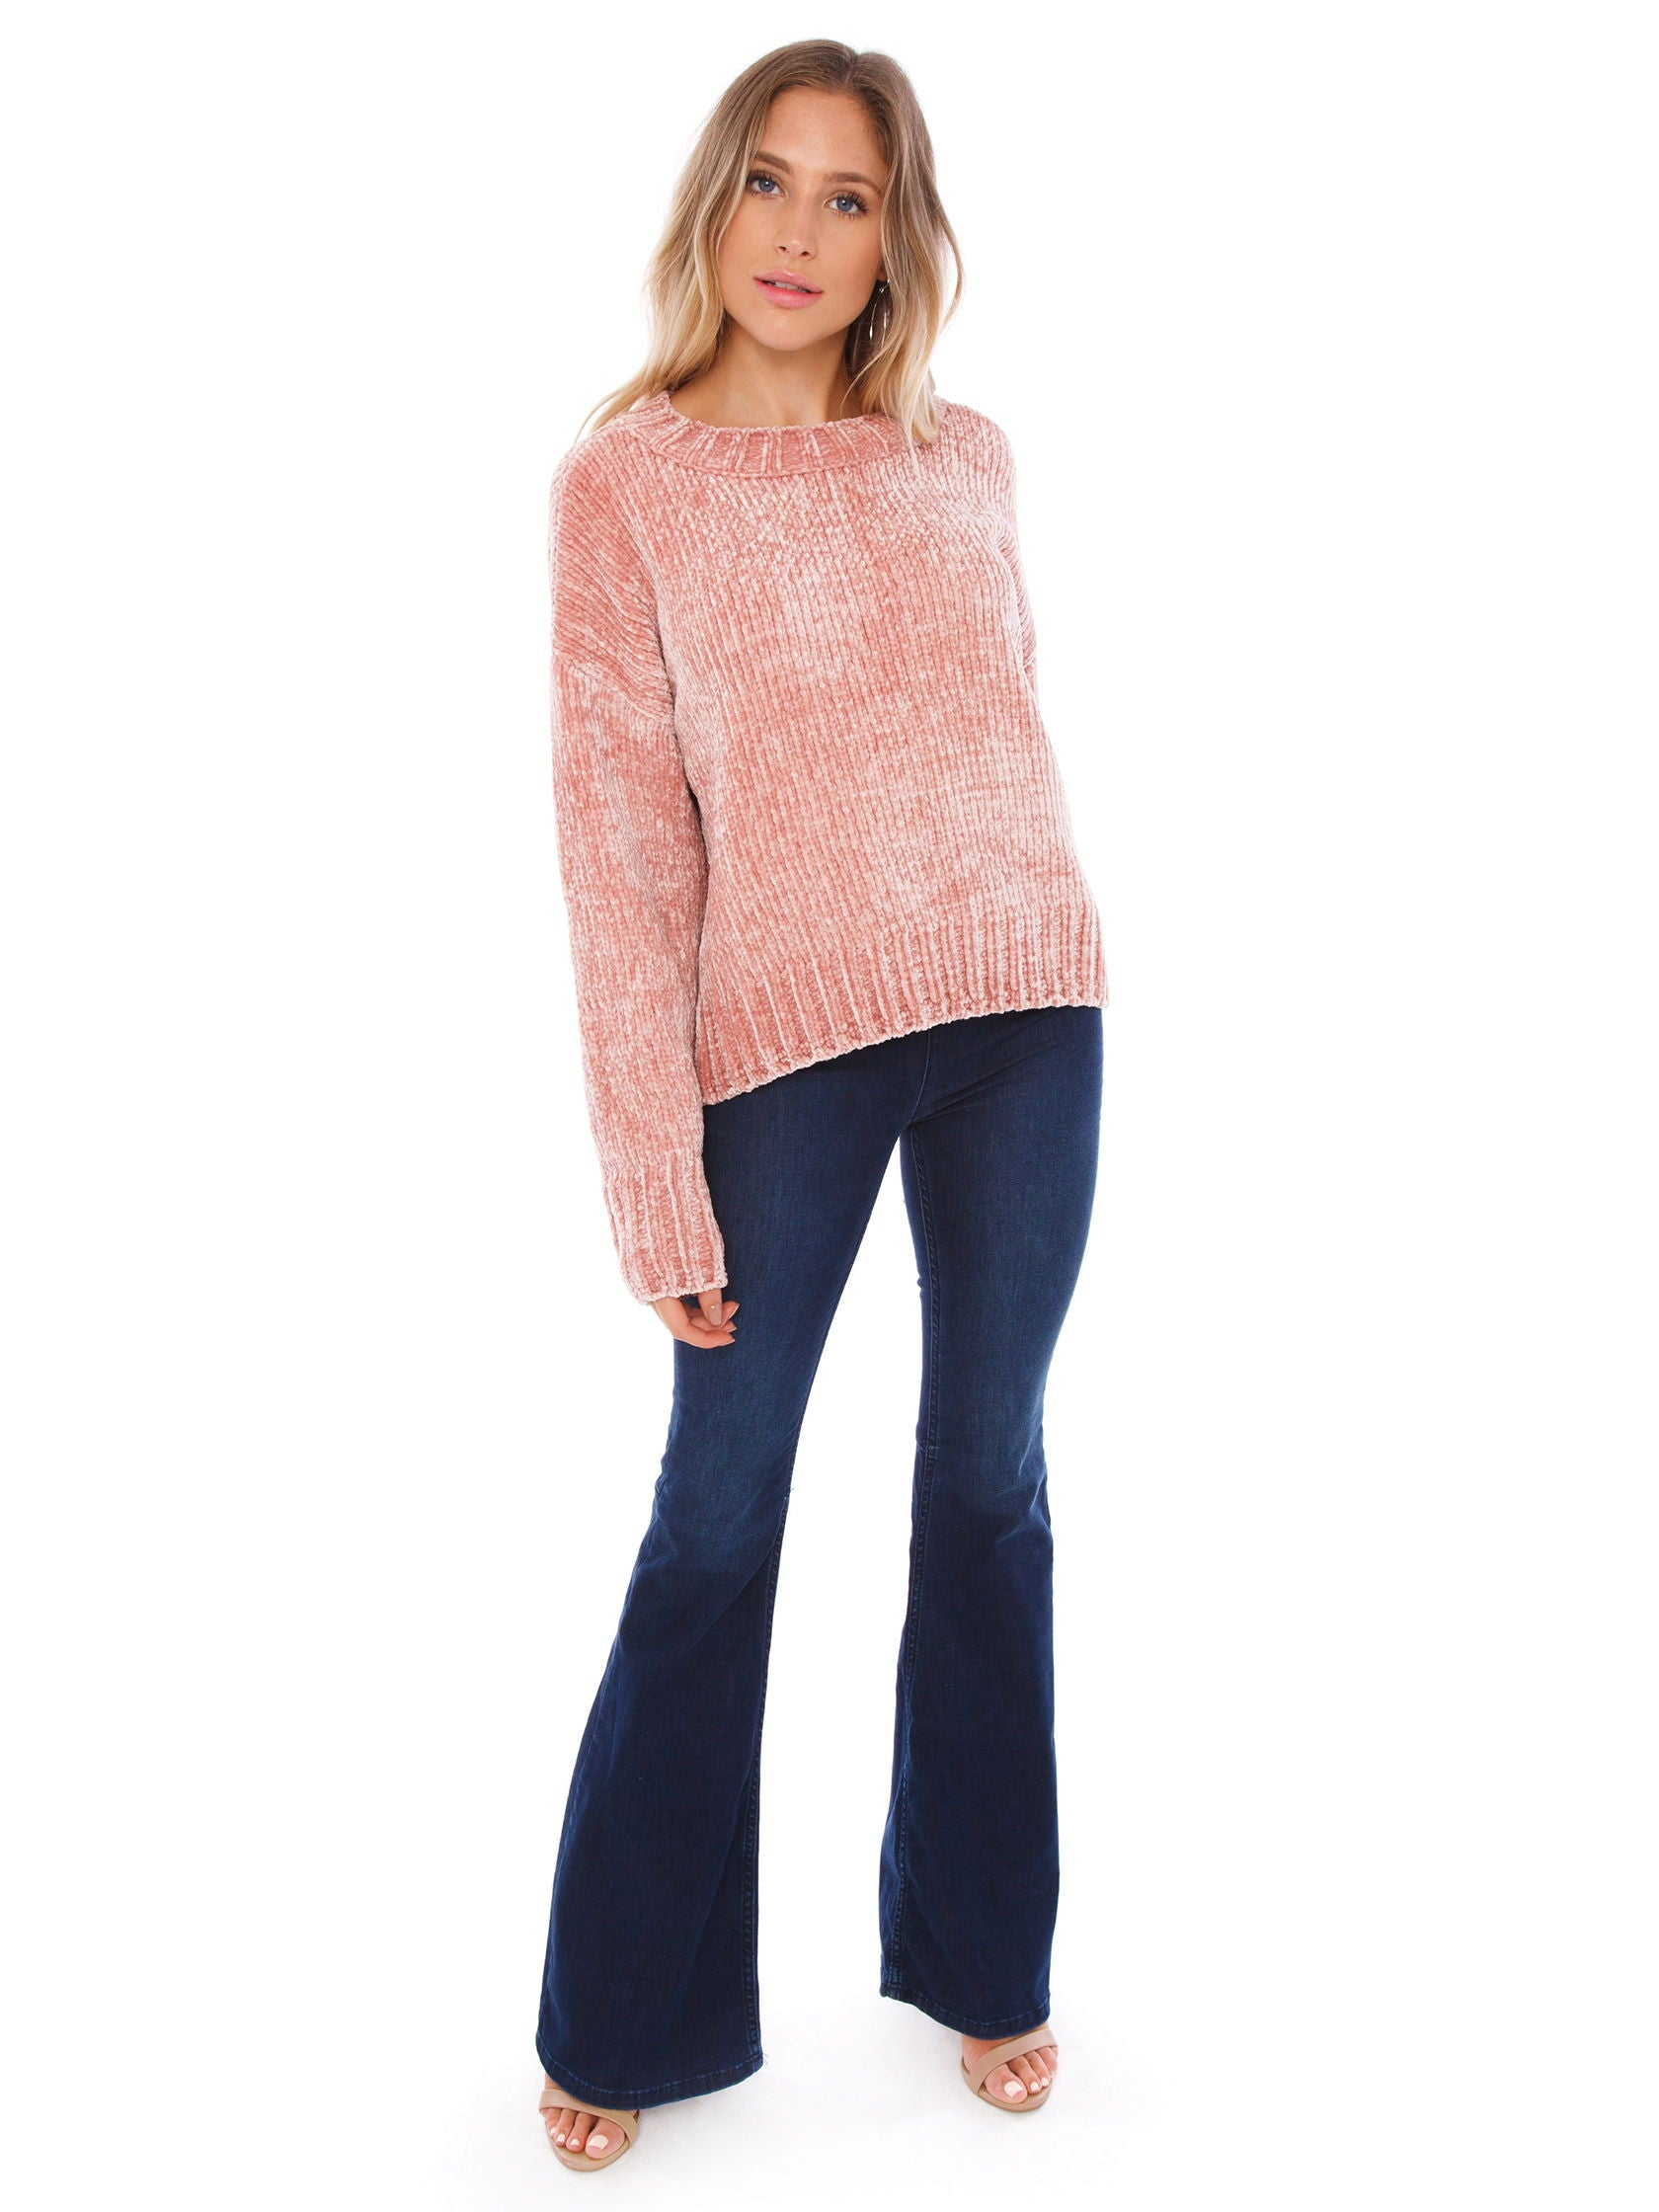 Girl wearing a sweater rental from SANCTUARY called Chenille Pullover